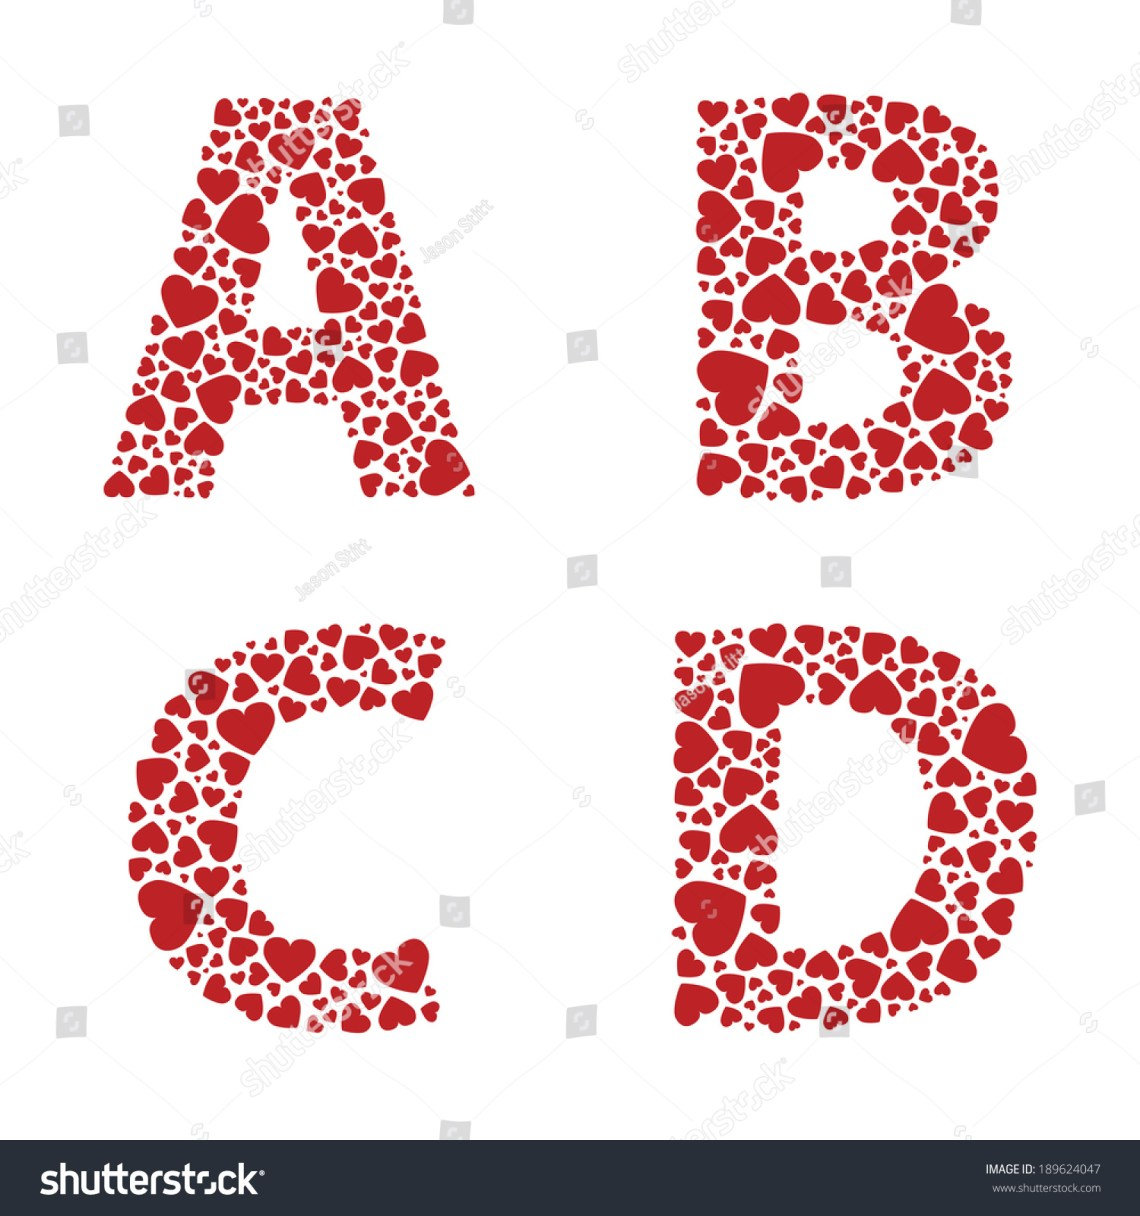 Download Abcd Heart Alphabet Letters Font Stock Vector 189624047 ...